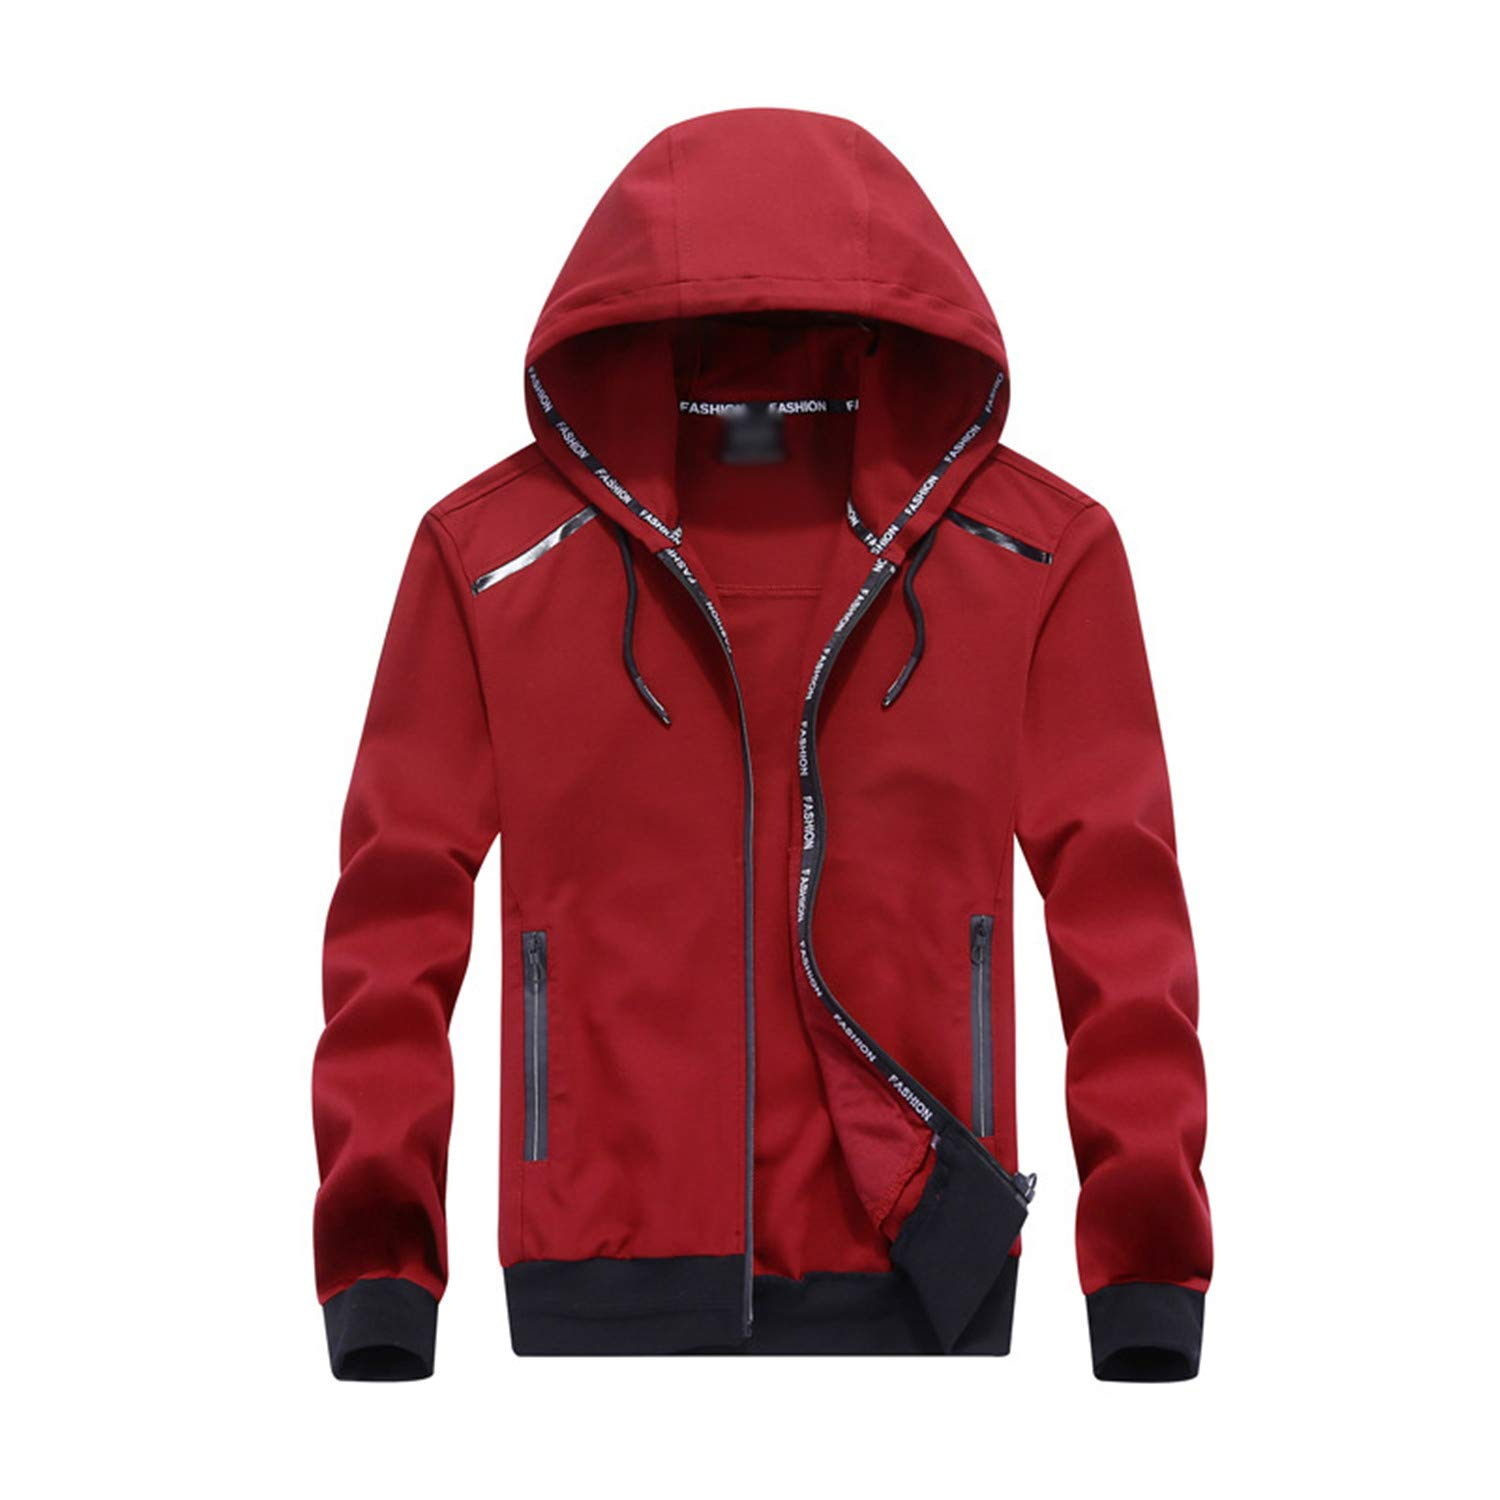 f97573ff Red Mandaartins Spring Autumn Men Hoodies Jacket Cardigan Cardigan Cardigan  Zipper Coats Sweatshirt for Mens Sportwear Tracksuit b09c90